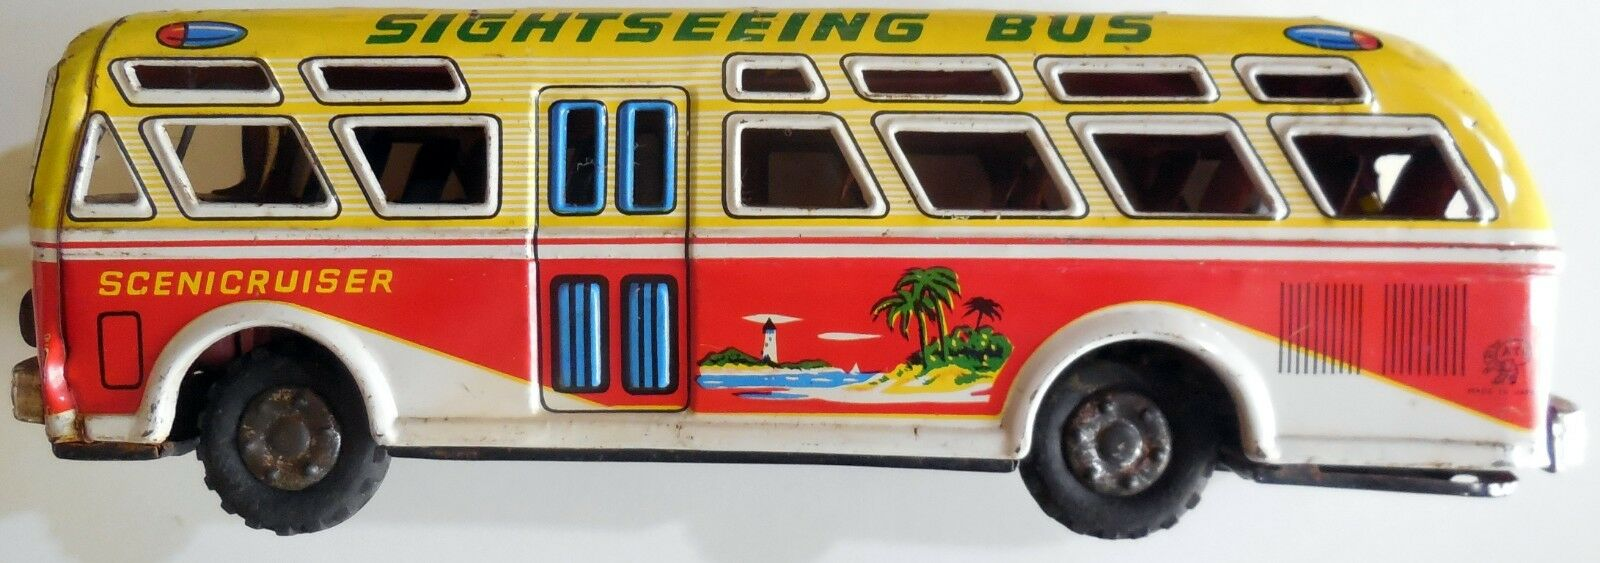 VINTAGE TIN TOY BUS SCENICRUISER SIGHTSEEING ATC ASAHI MADE IN JAPAN 1950s